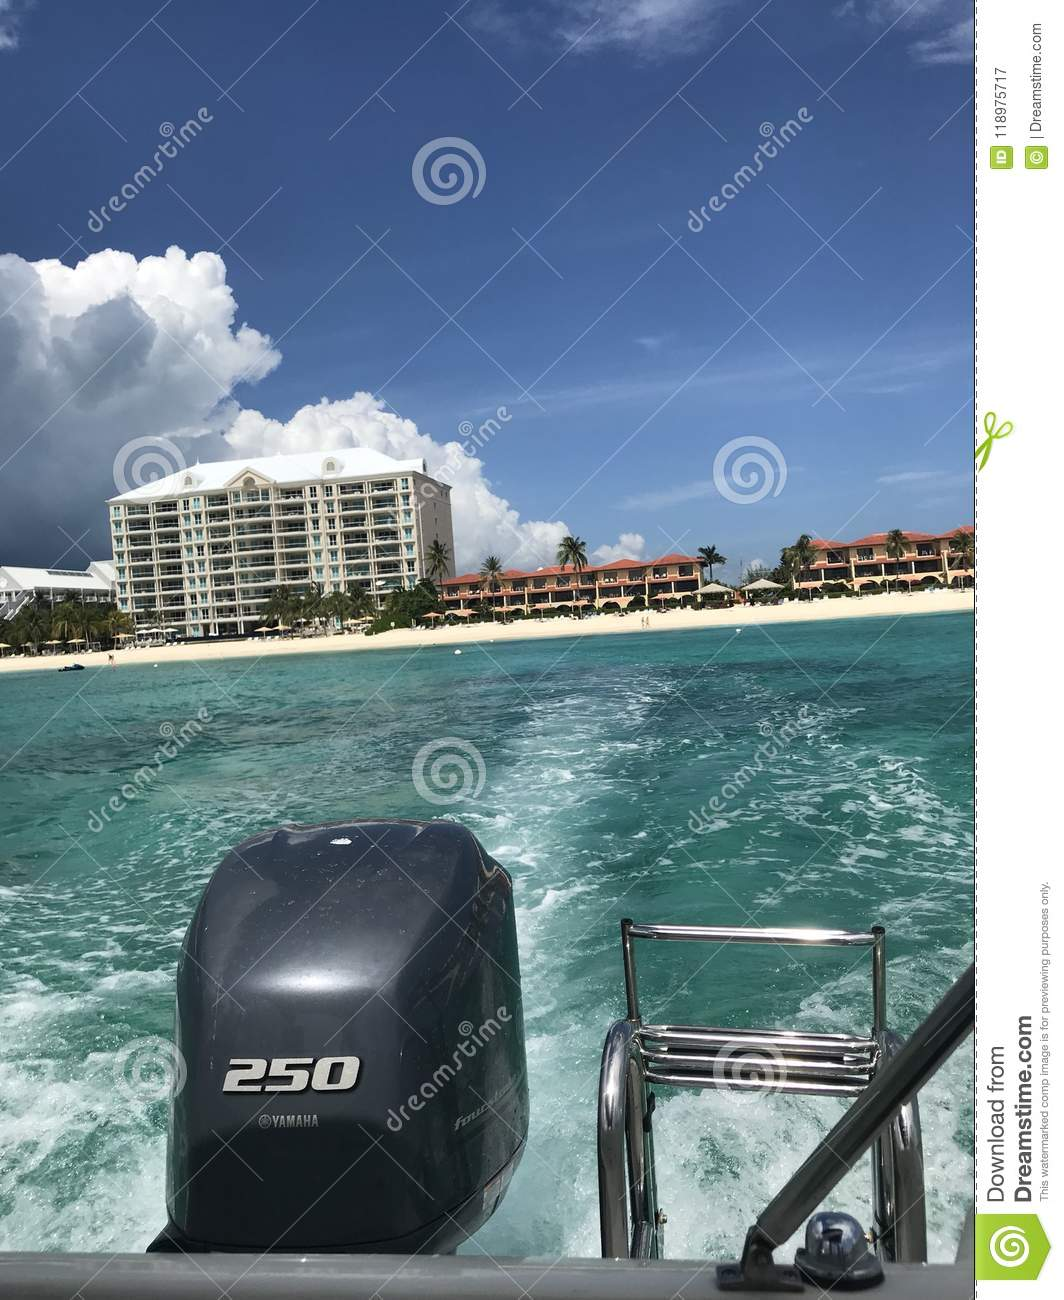 On a boat in Cayman Islands